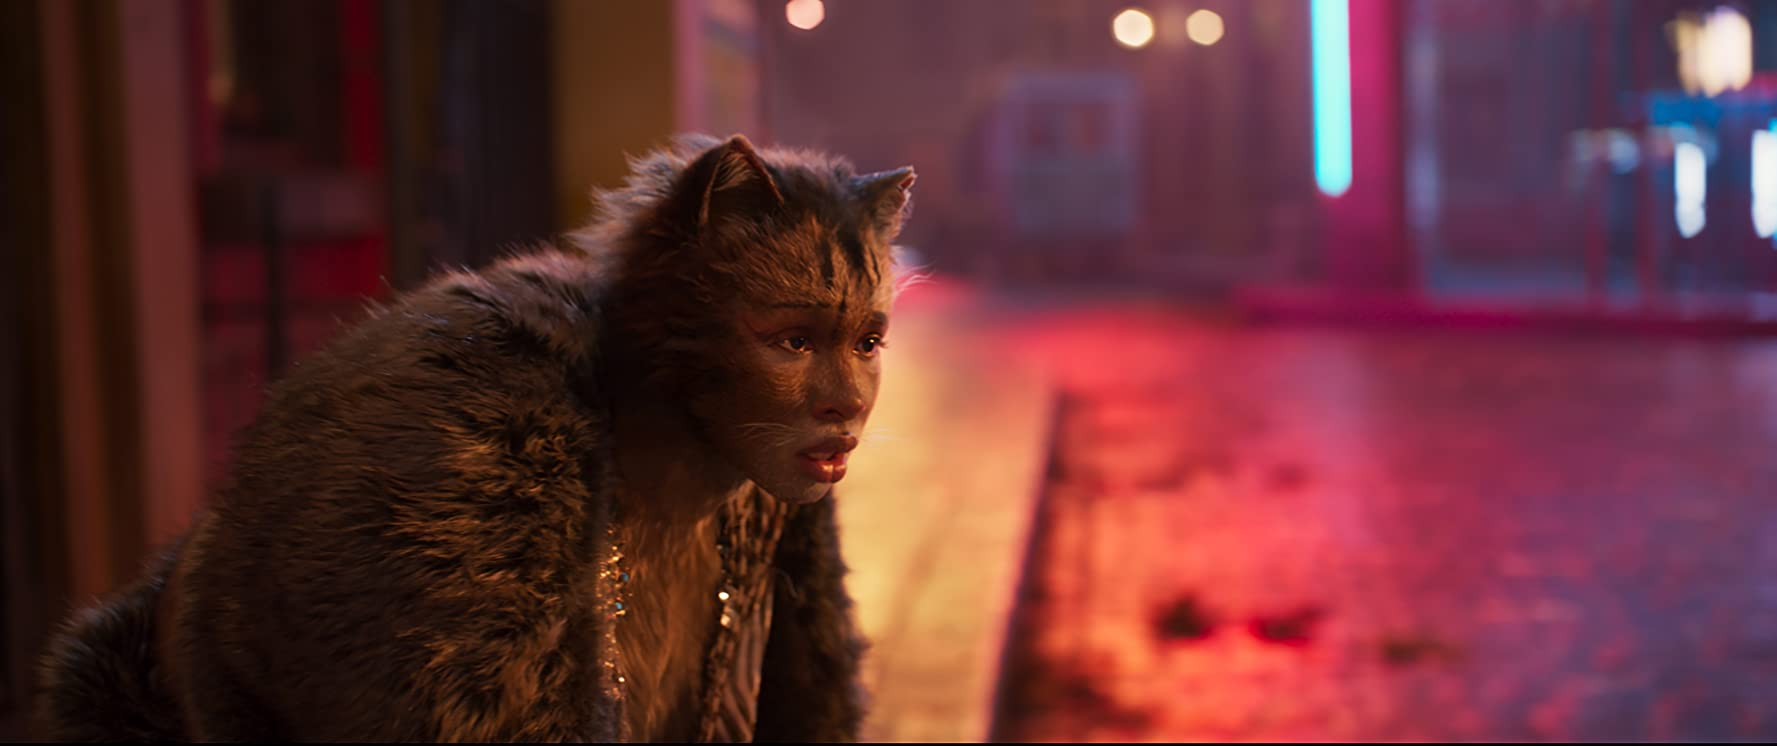 Jennifer Hudson in Cats (2019)